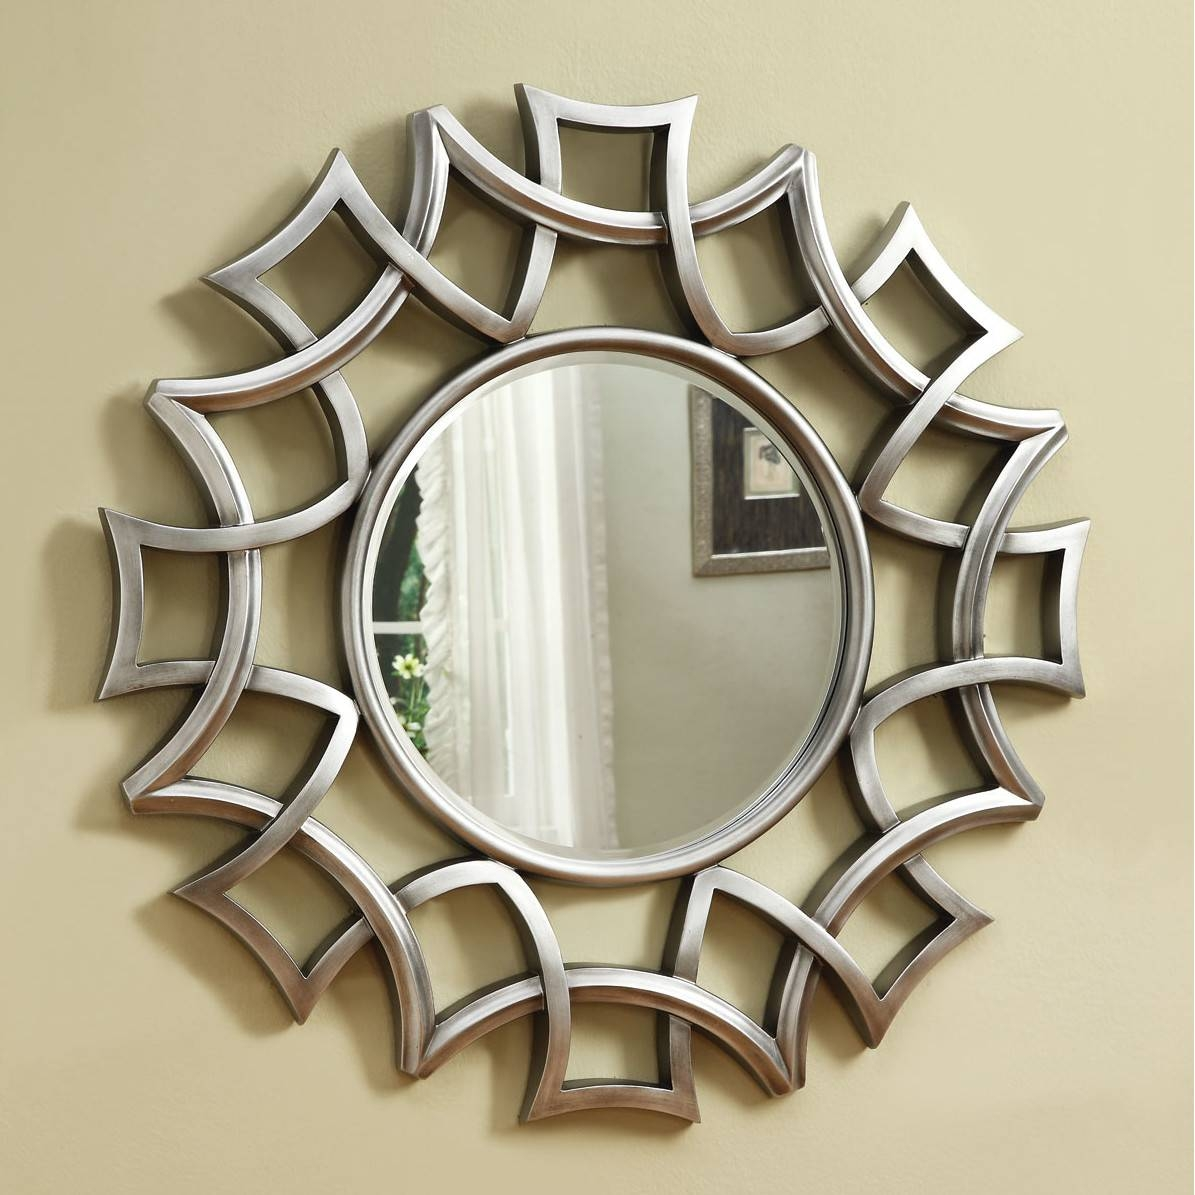 Crate And Barrel Mirror 56 Cool Ideas For Objects Crate Barrel with Bronze Starburst Mirrors (Image 5 of 25)